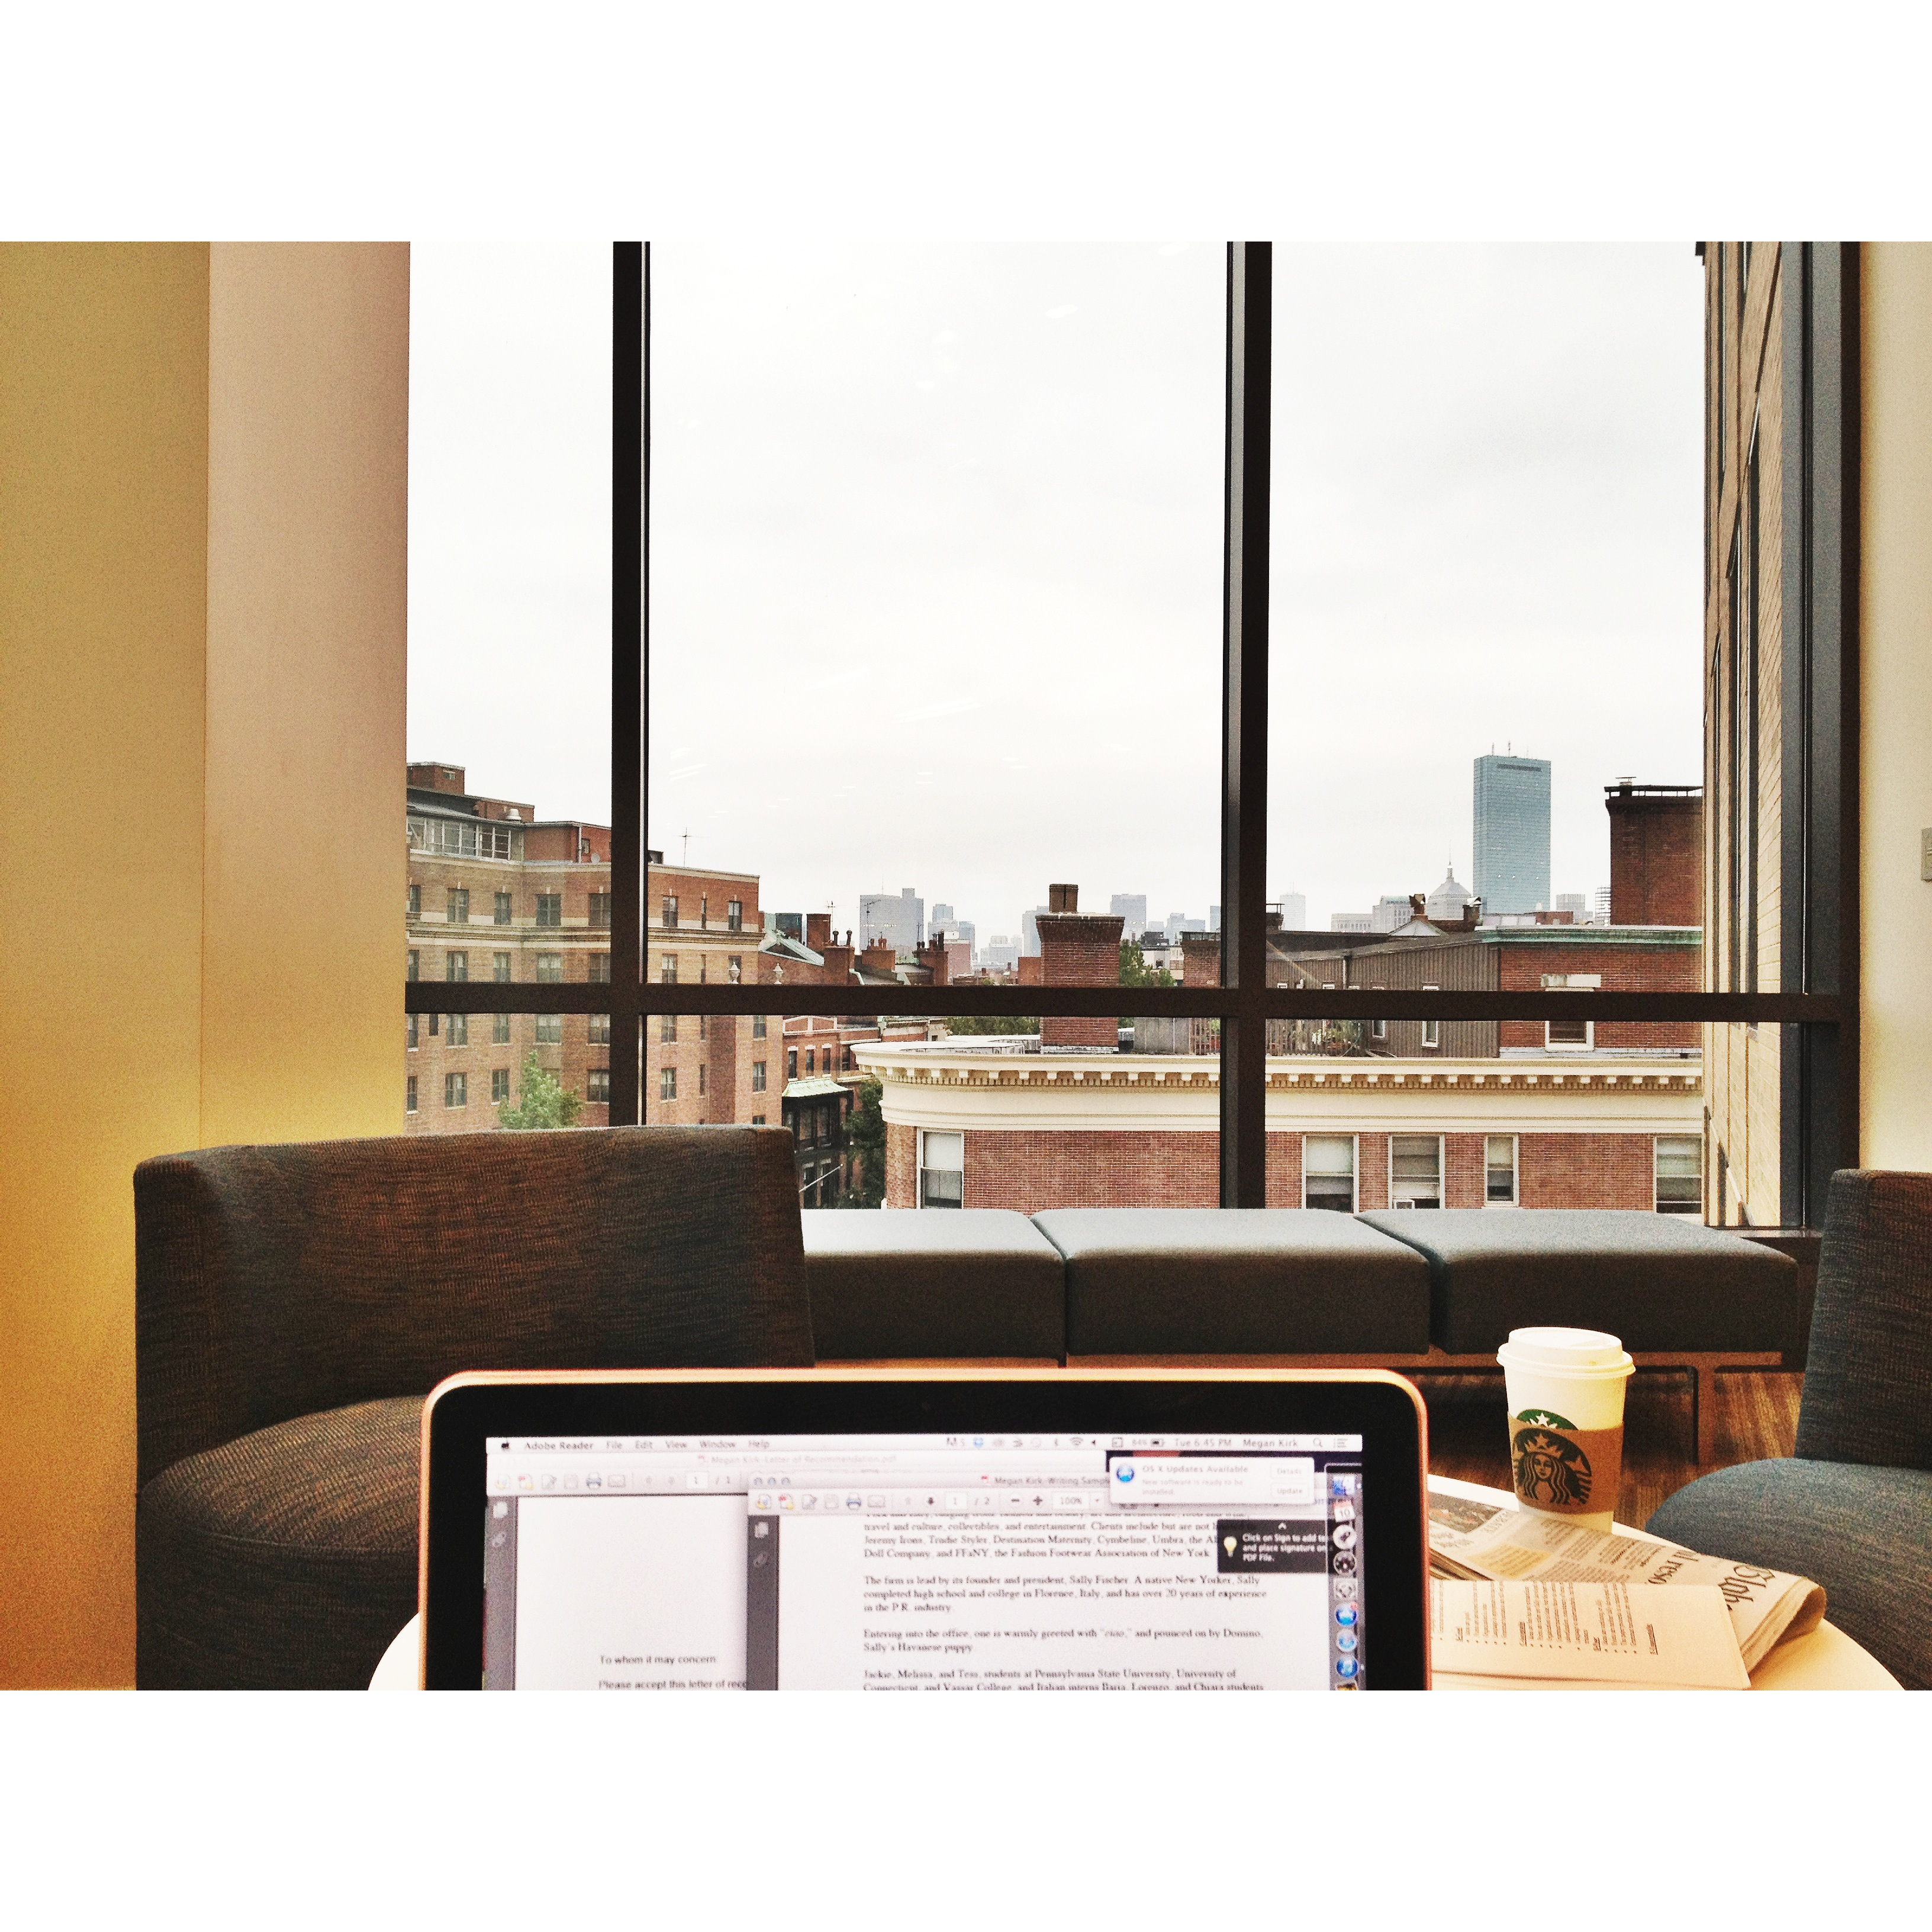 Finals A Look At 5 Of The Best Study Spots On Campus